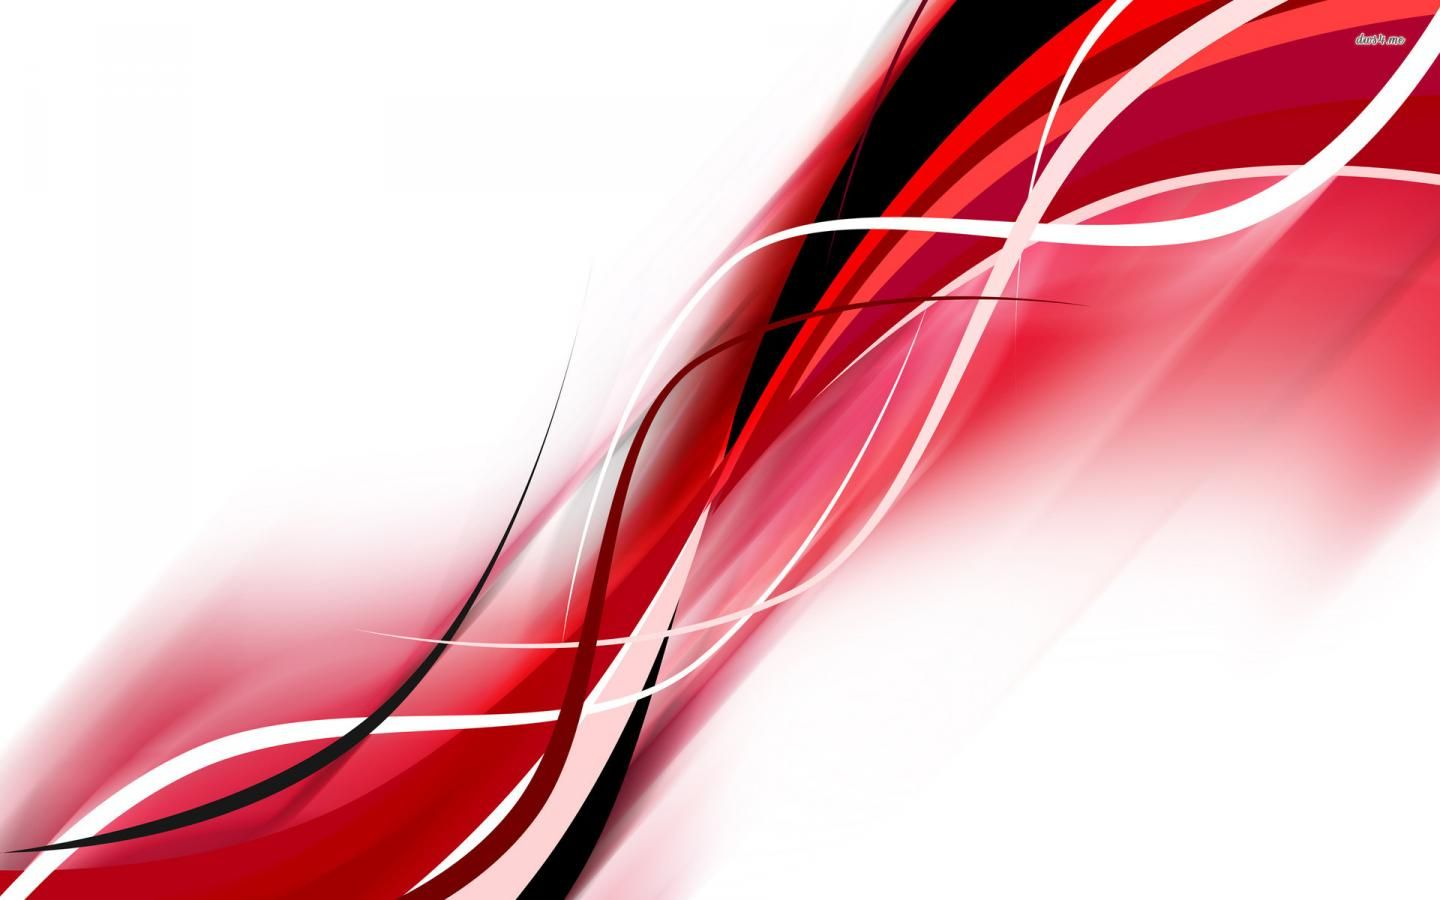 Wallpaper Abstracto Red Widescreen Hd 10 Wallpapers Hd Desain Abstrak Merah